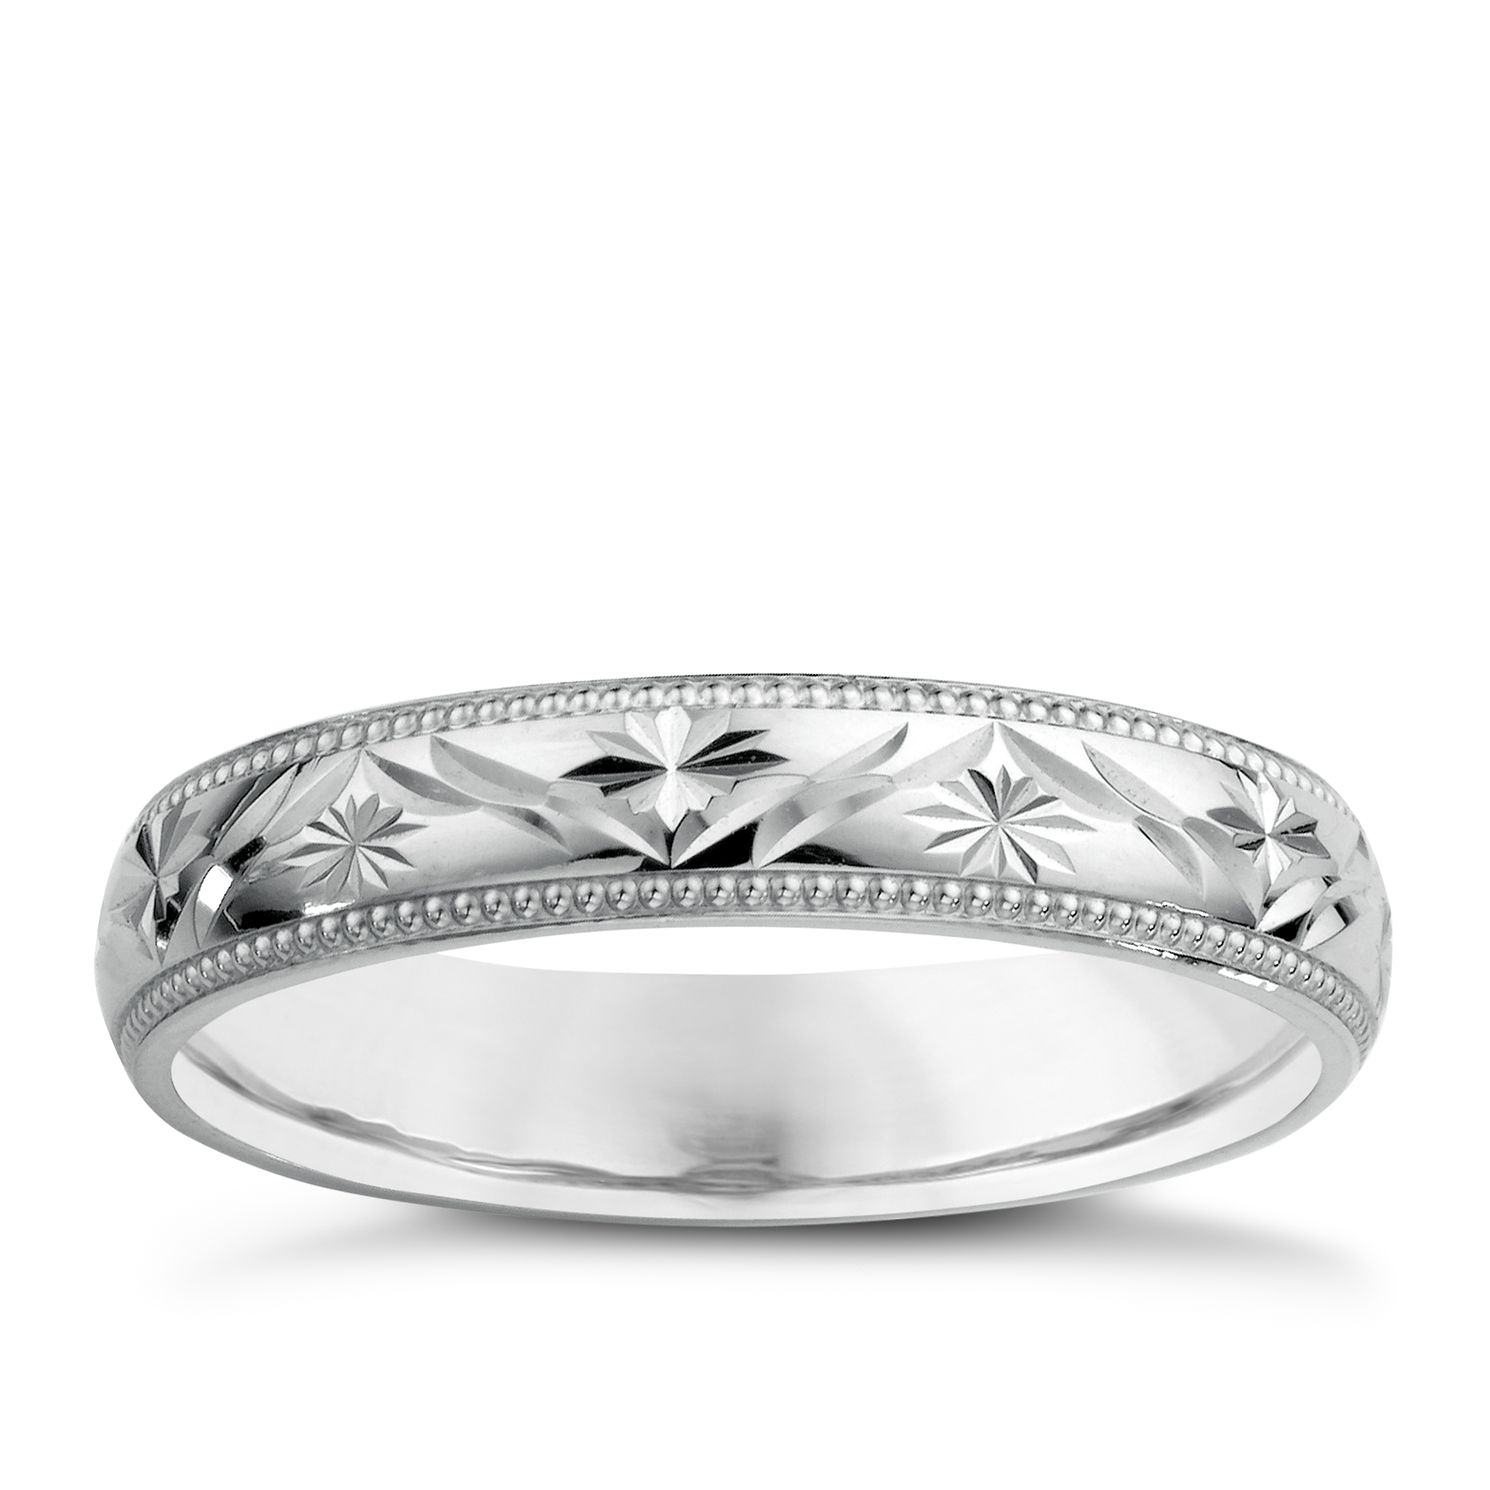 9ct White Gold La s Patterned Wedding Ring